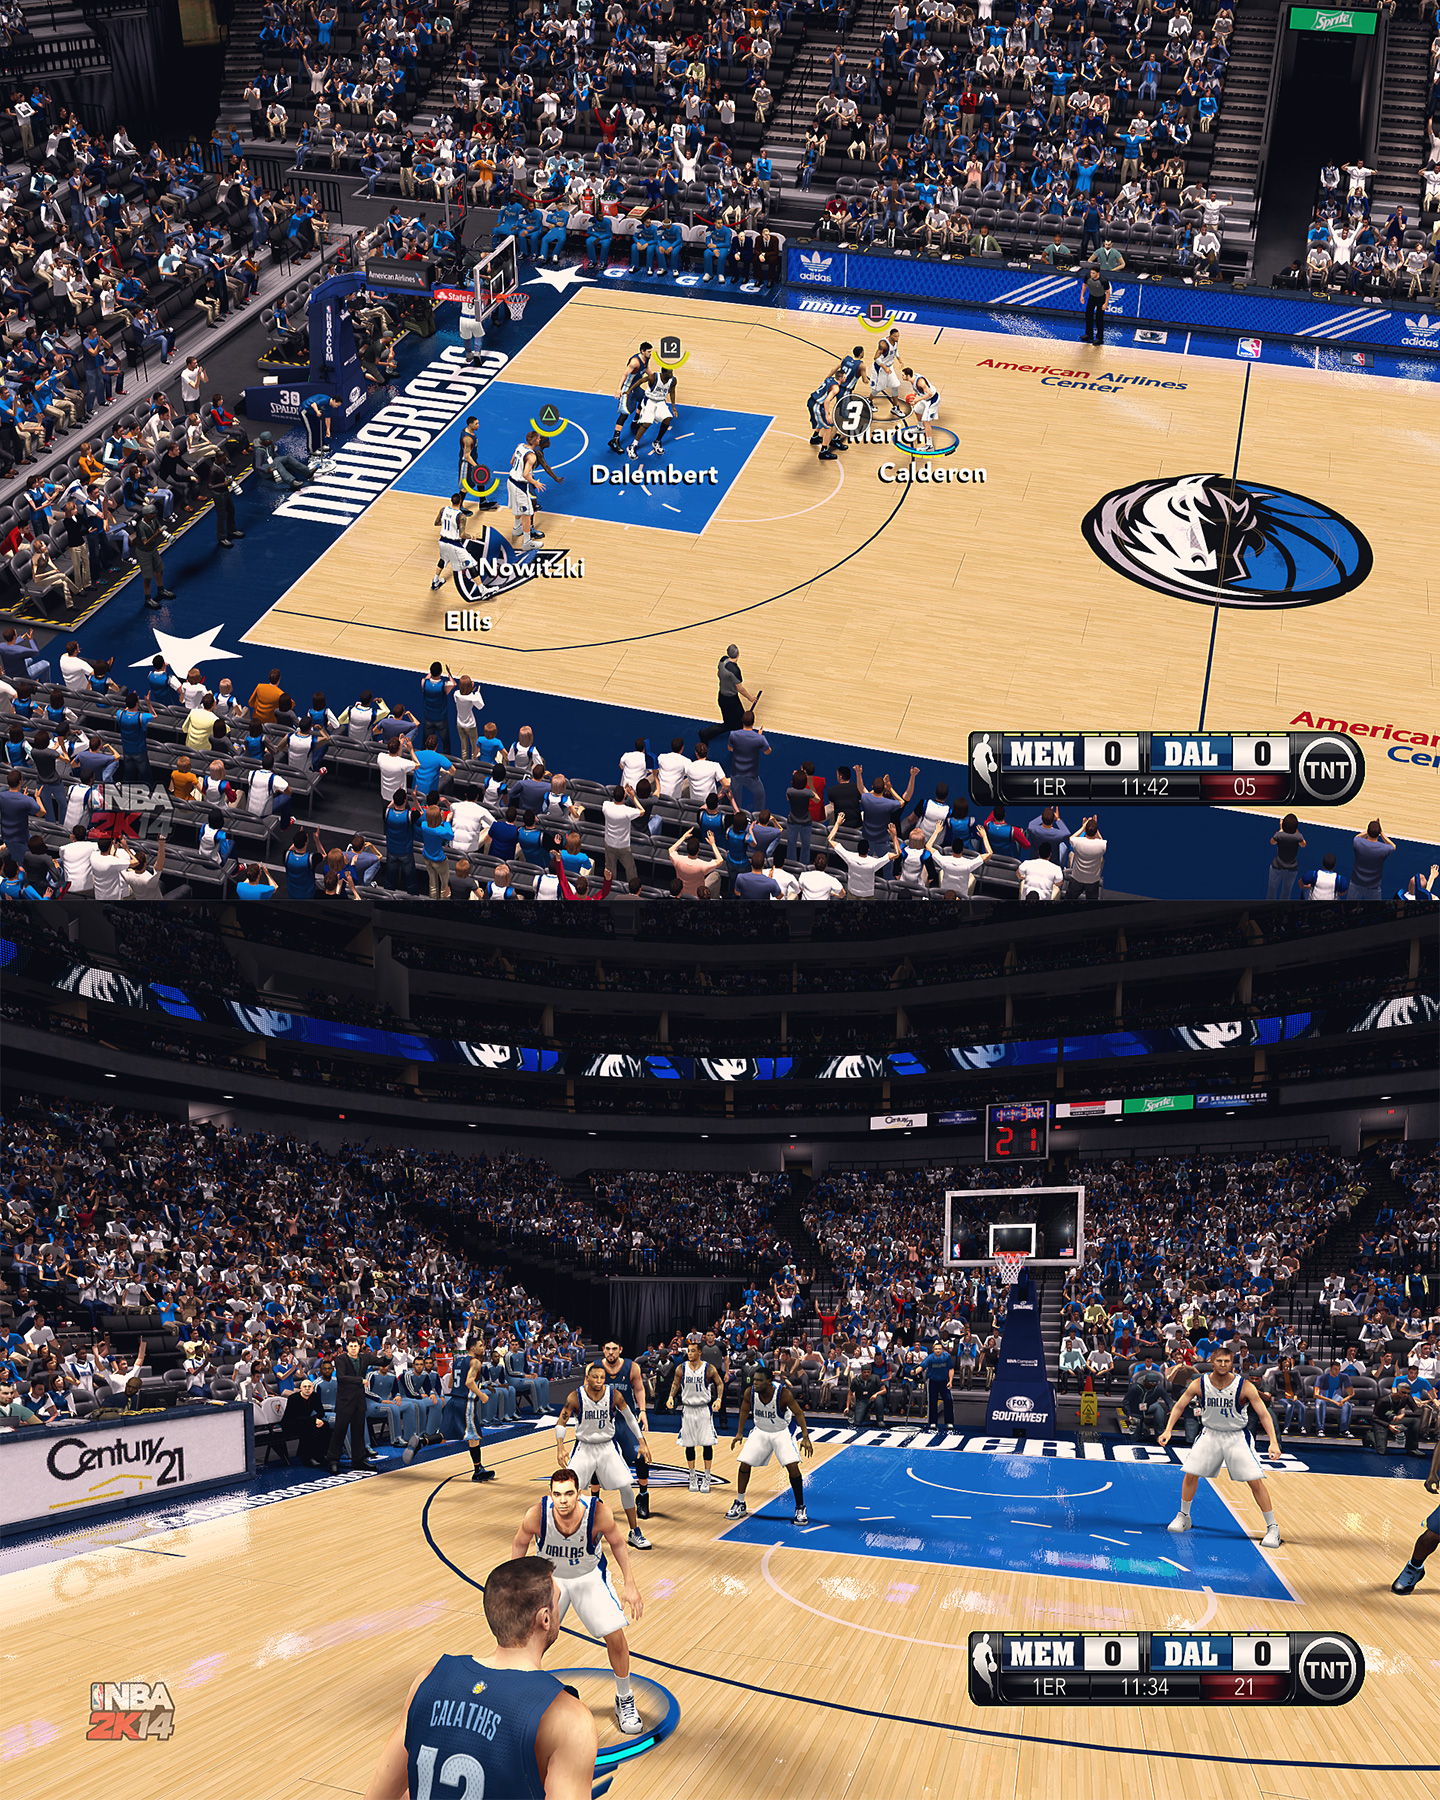 Dallas Mavericks American Airlines Center - HD Arena